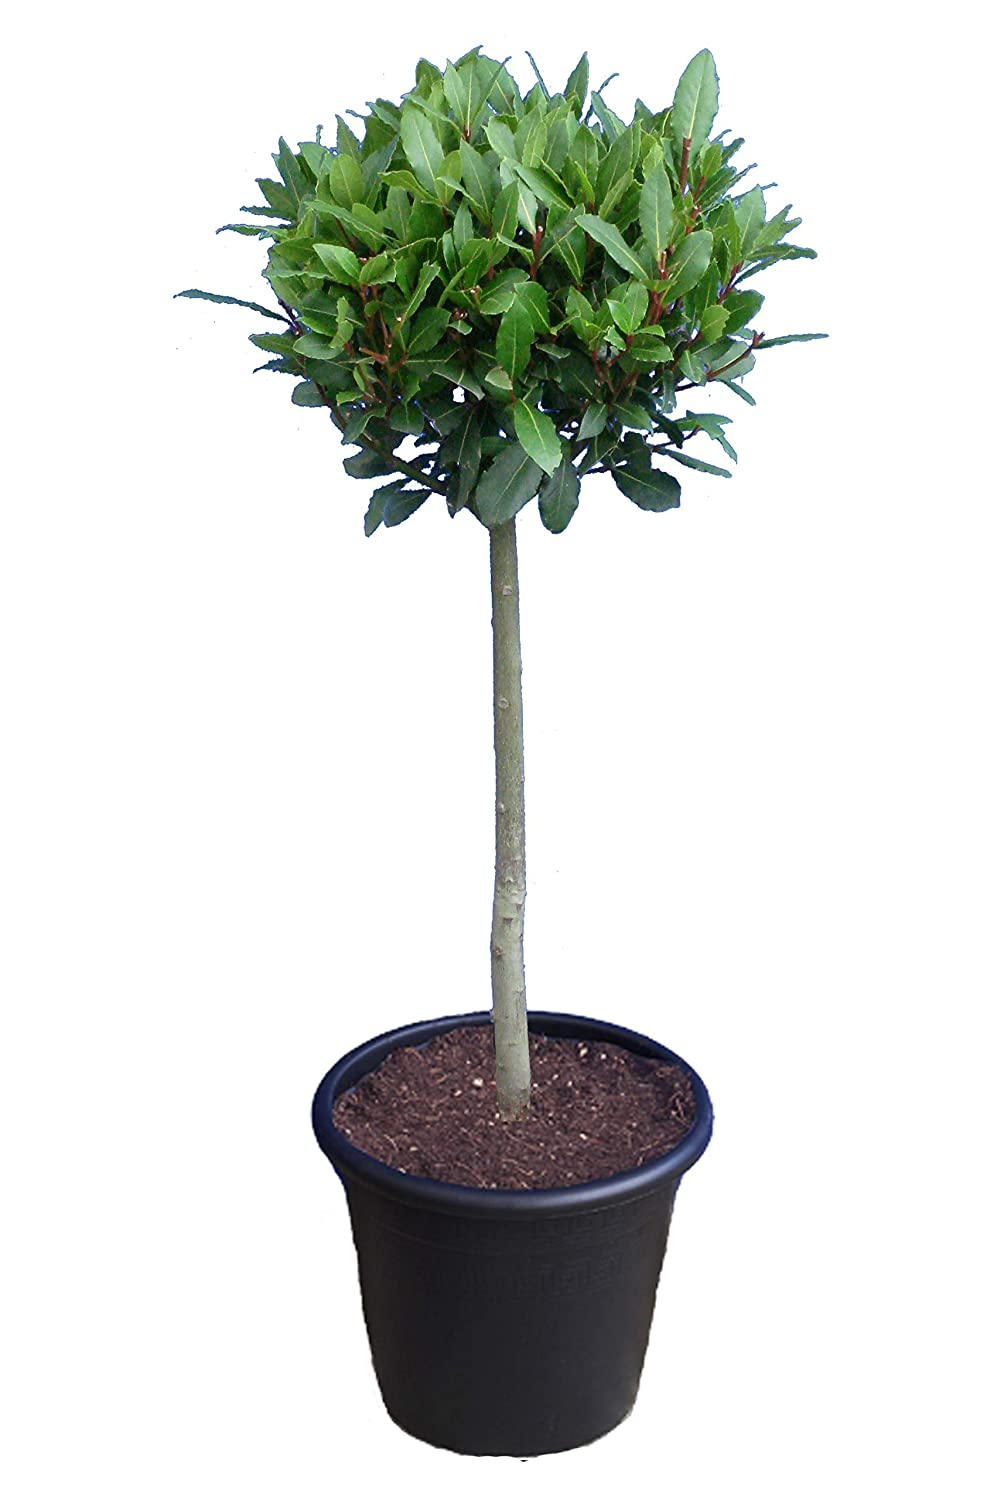 Image result for Laurus nobilis bonsai